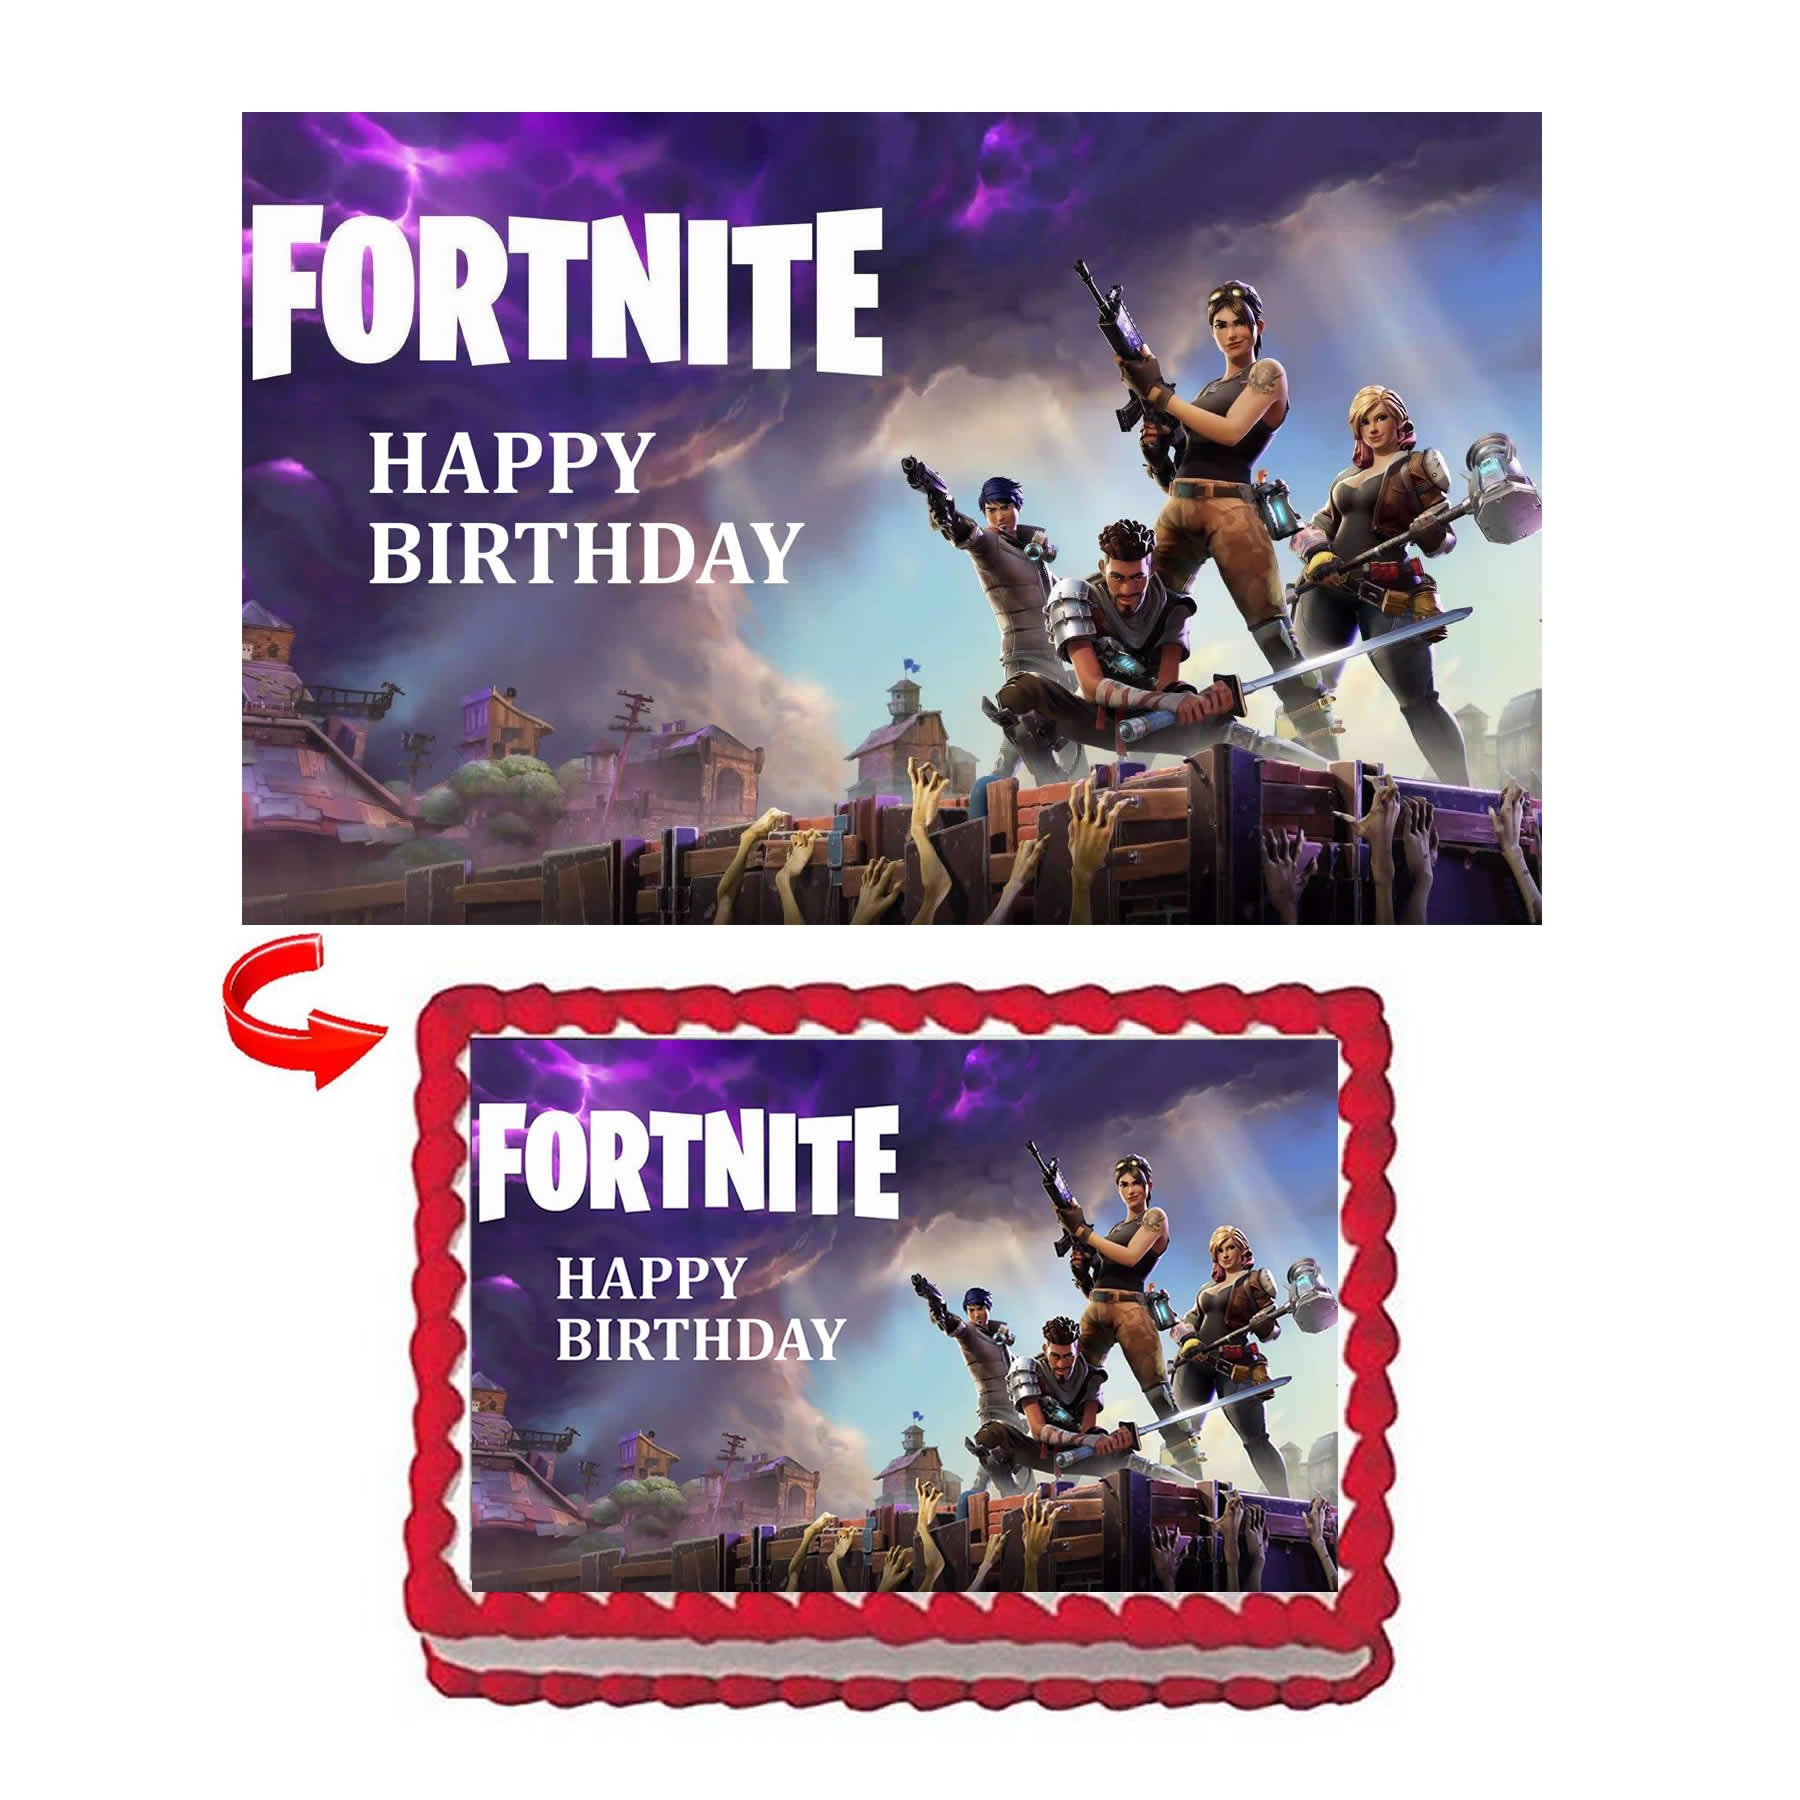 GEORLD Fortnite Battle Edible Image Cake Topper 1/4 Sheet Birthday Party Decoration,NO NAME Printed